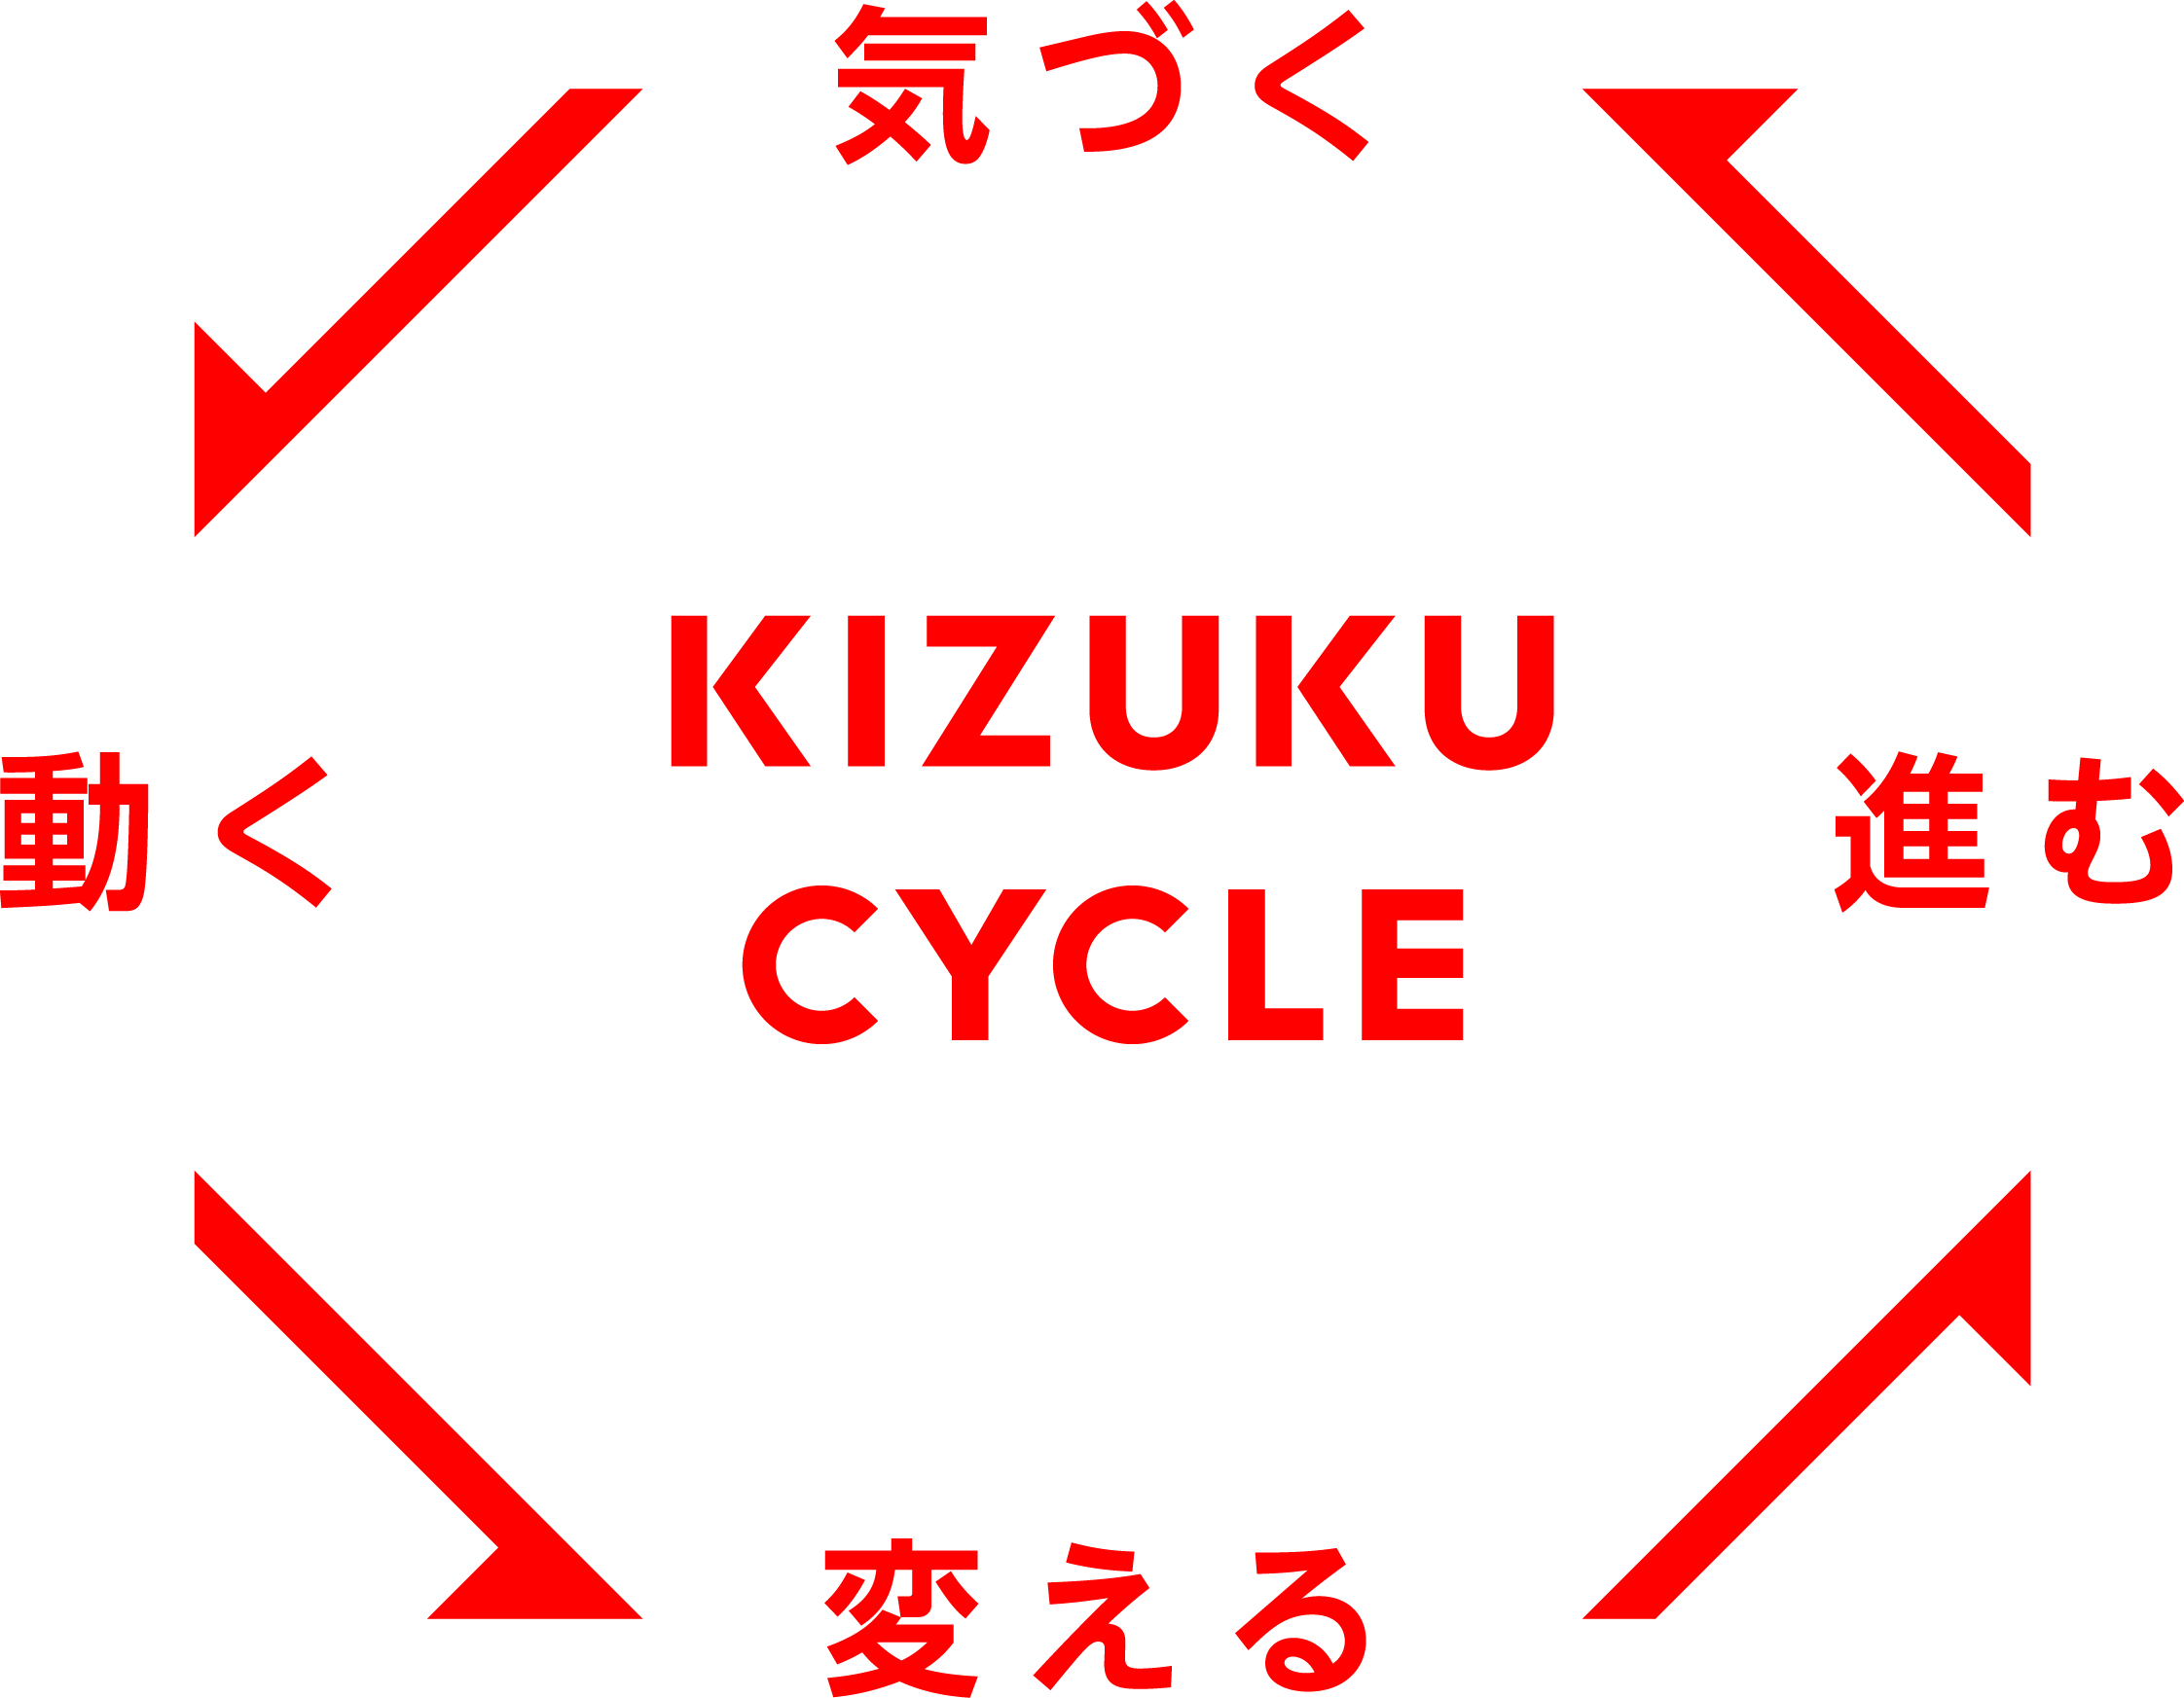 KIZUKUCYCLE